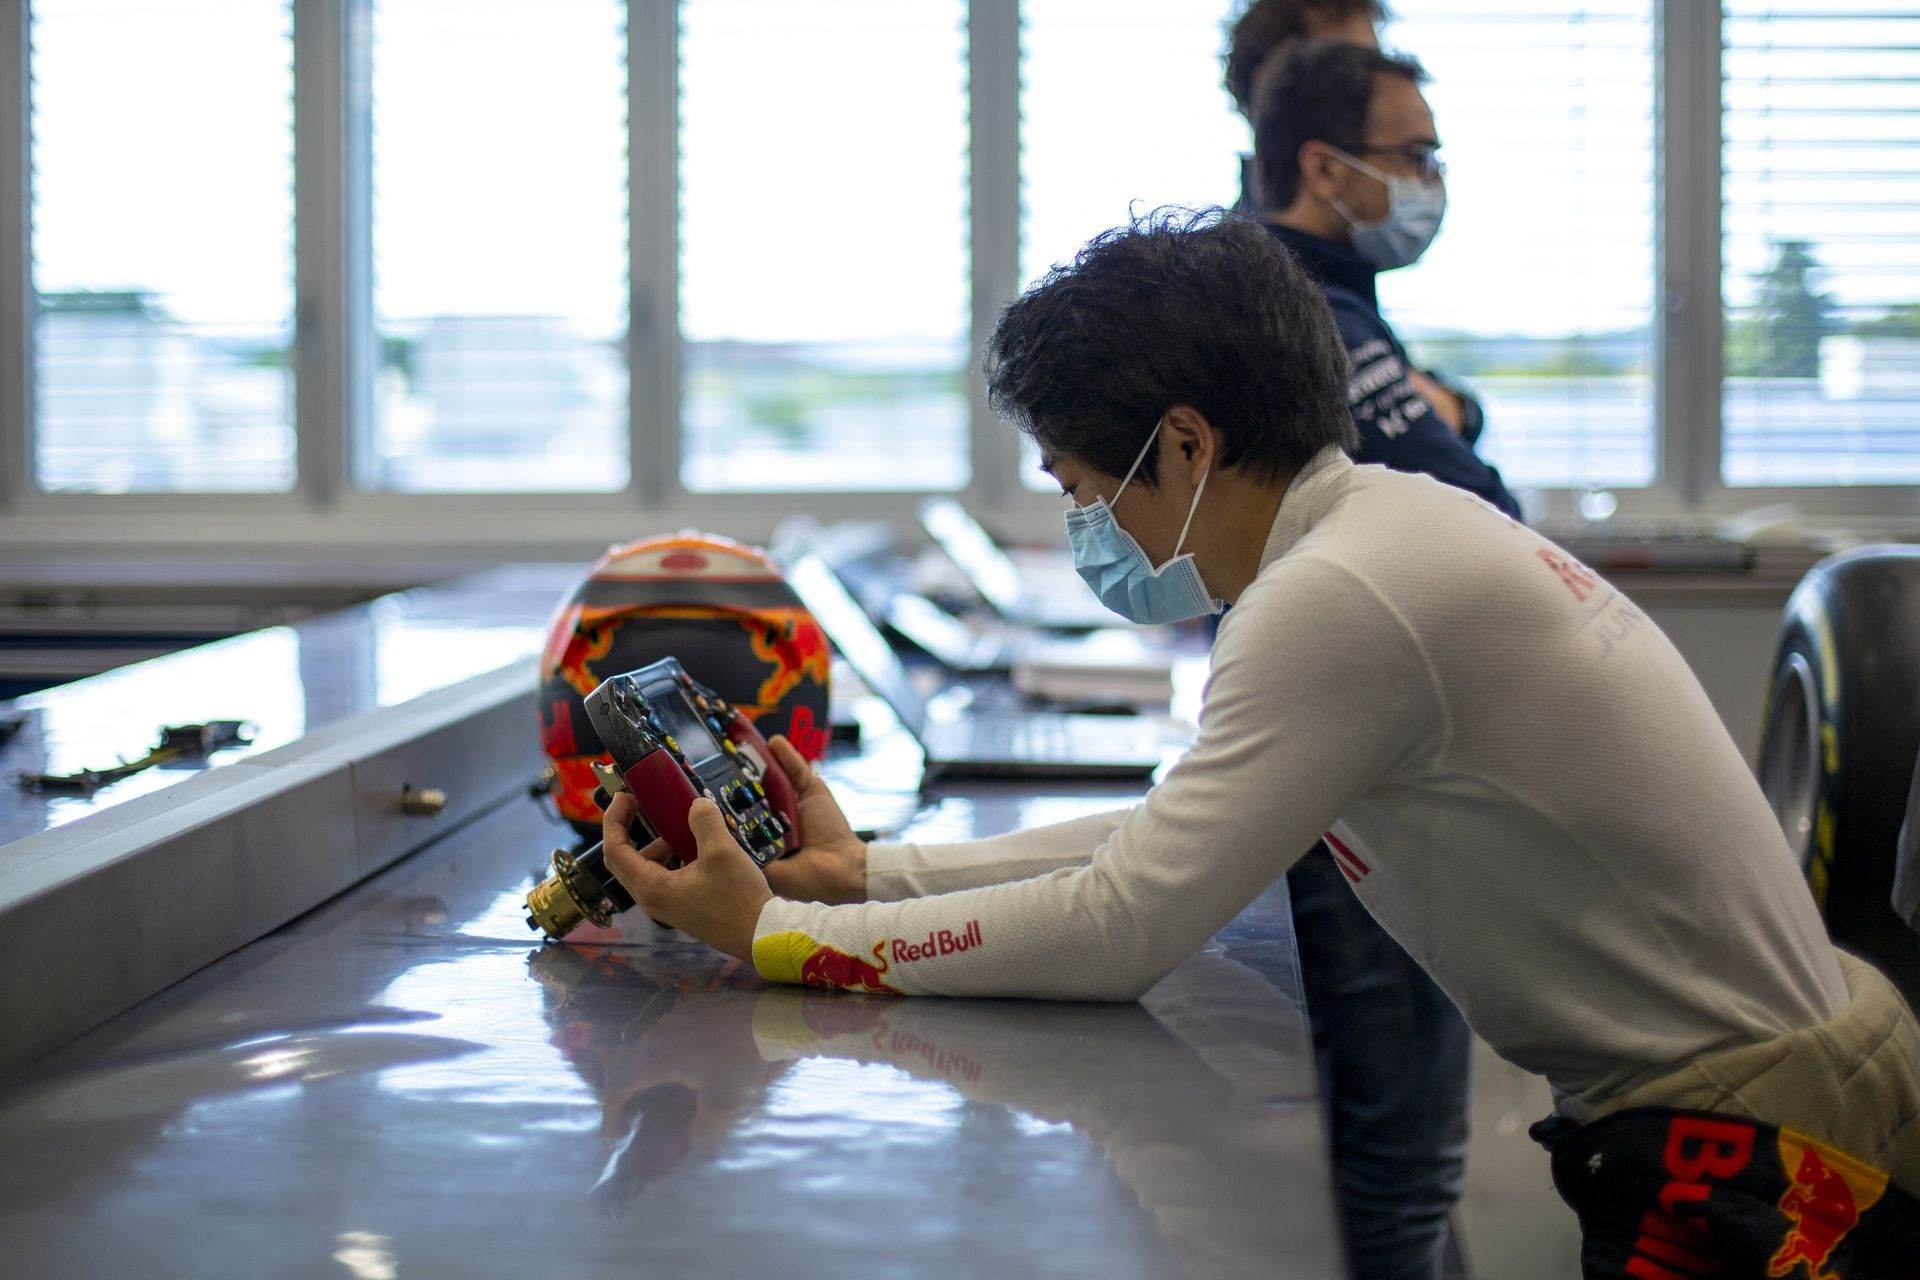 FAENZA, ITALY - OCTOBER 14: Yuki Tsunoda of Japan completes his seat fit at the Scuderia AlphaTauri factory on October 14, 2020 in Faenza, Italy. (Photo by Josh Kruse/Scuderia AlphaTauri) // Josh Kruse / Scuderia AlphaTauri / Red Bull Content Pool // SI202010140213 // Usage for editorial use only //